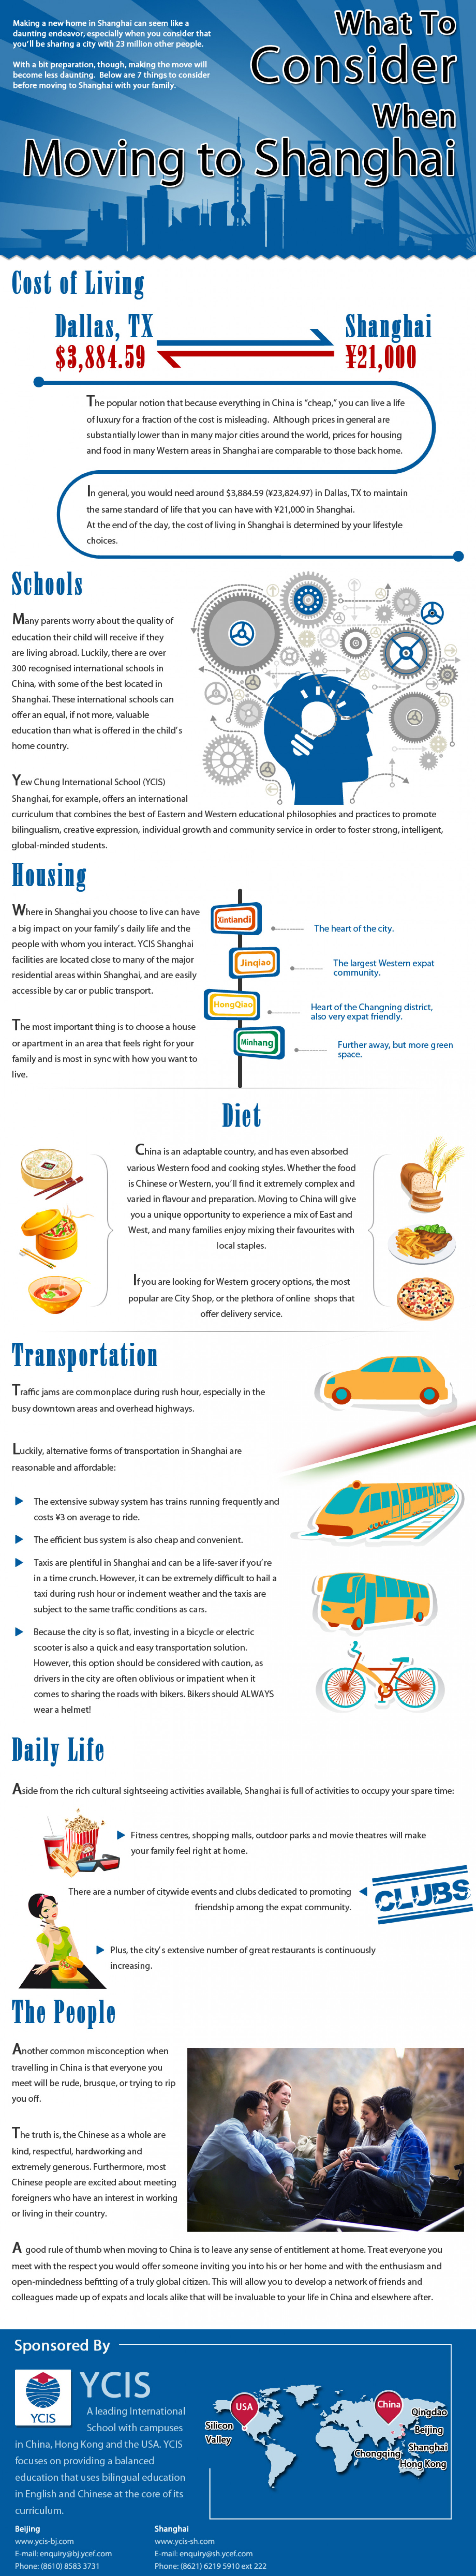 What to consider when moving to Shanghai Infographic